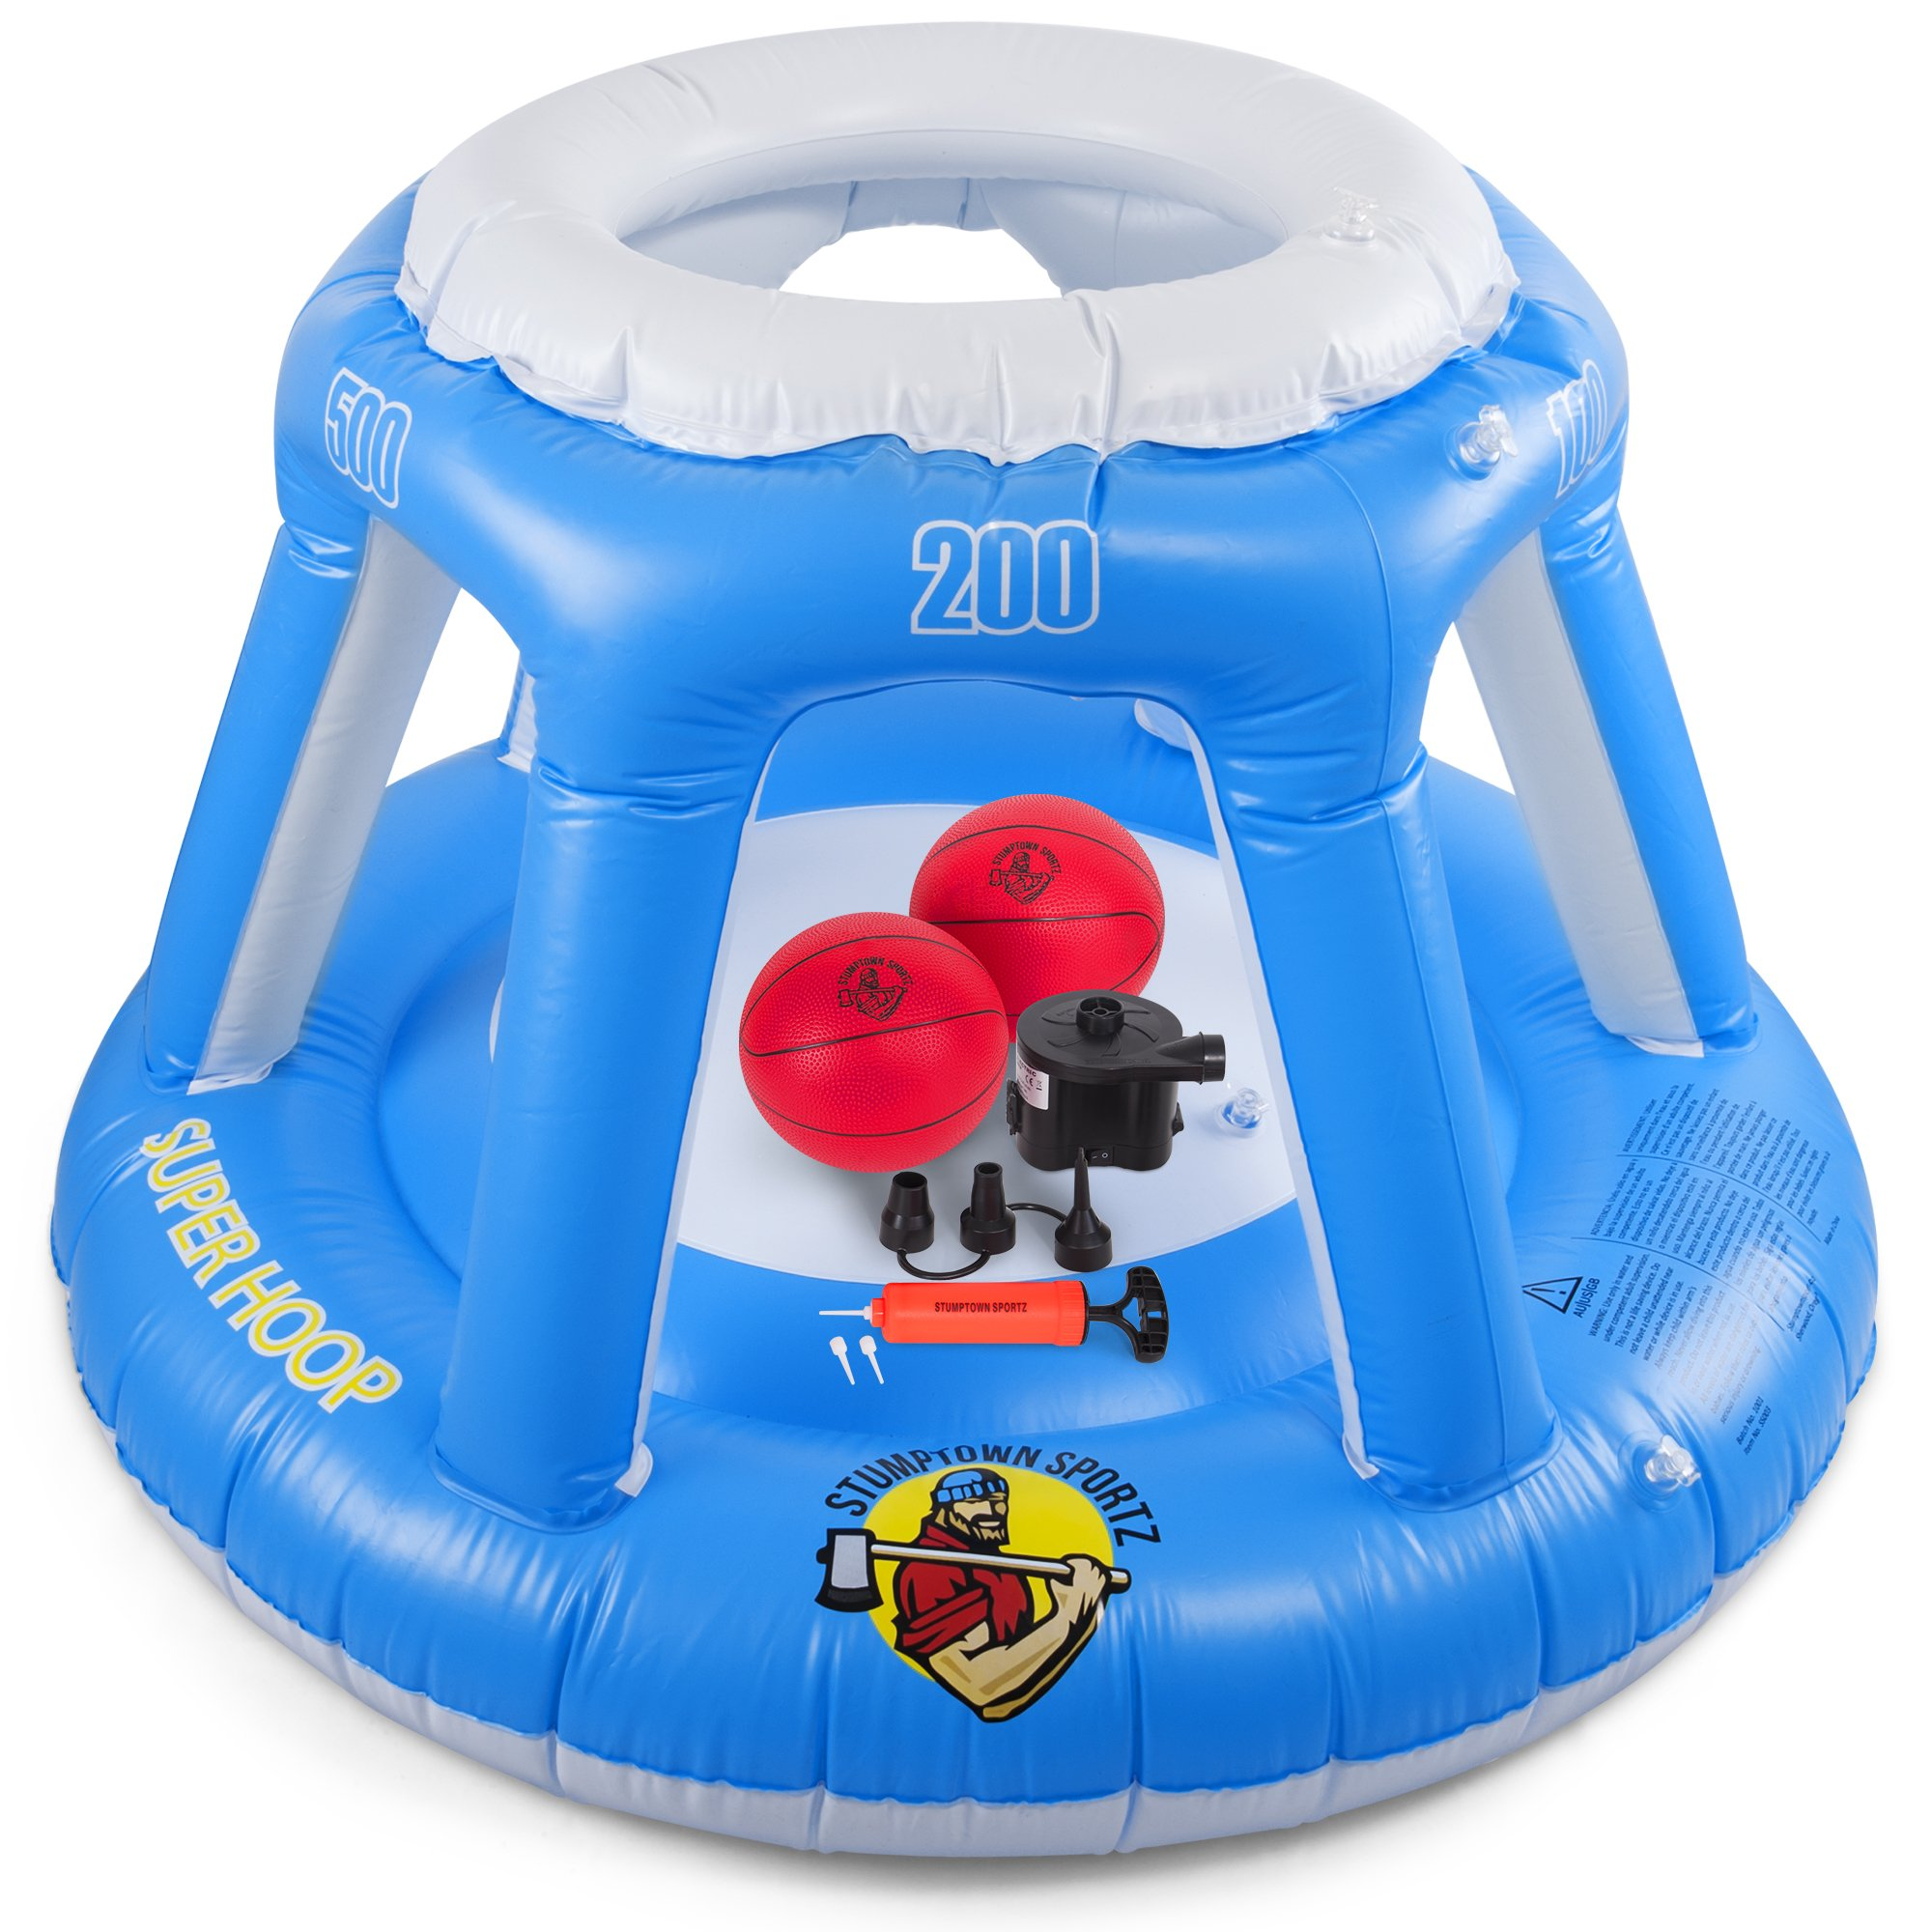 Inflatable Basketball Hoop for Water with 2 Basketballs & Battery Operated Pump | Also Includes Hand Pump with 3 Inflation Needles | Meant for Swimming Pools and Water Sports